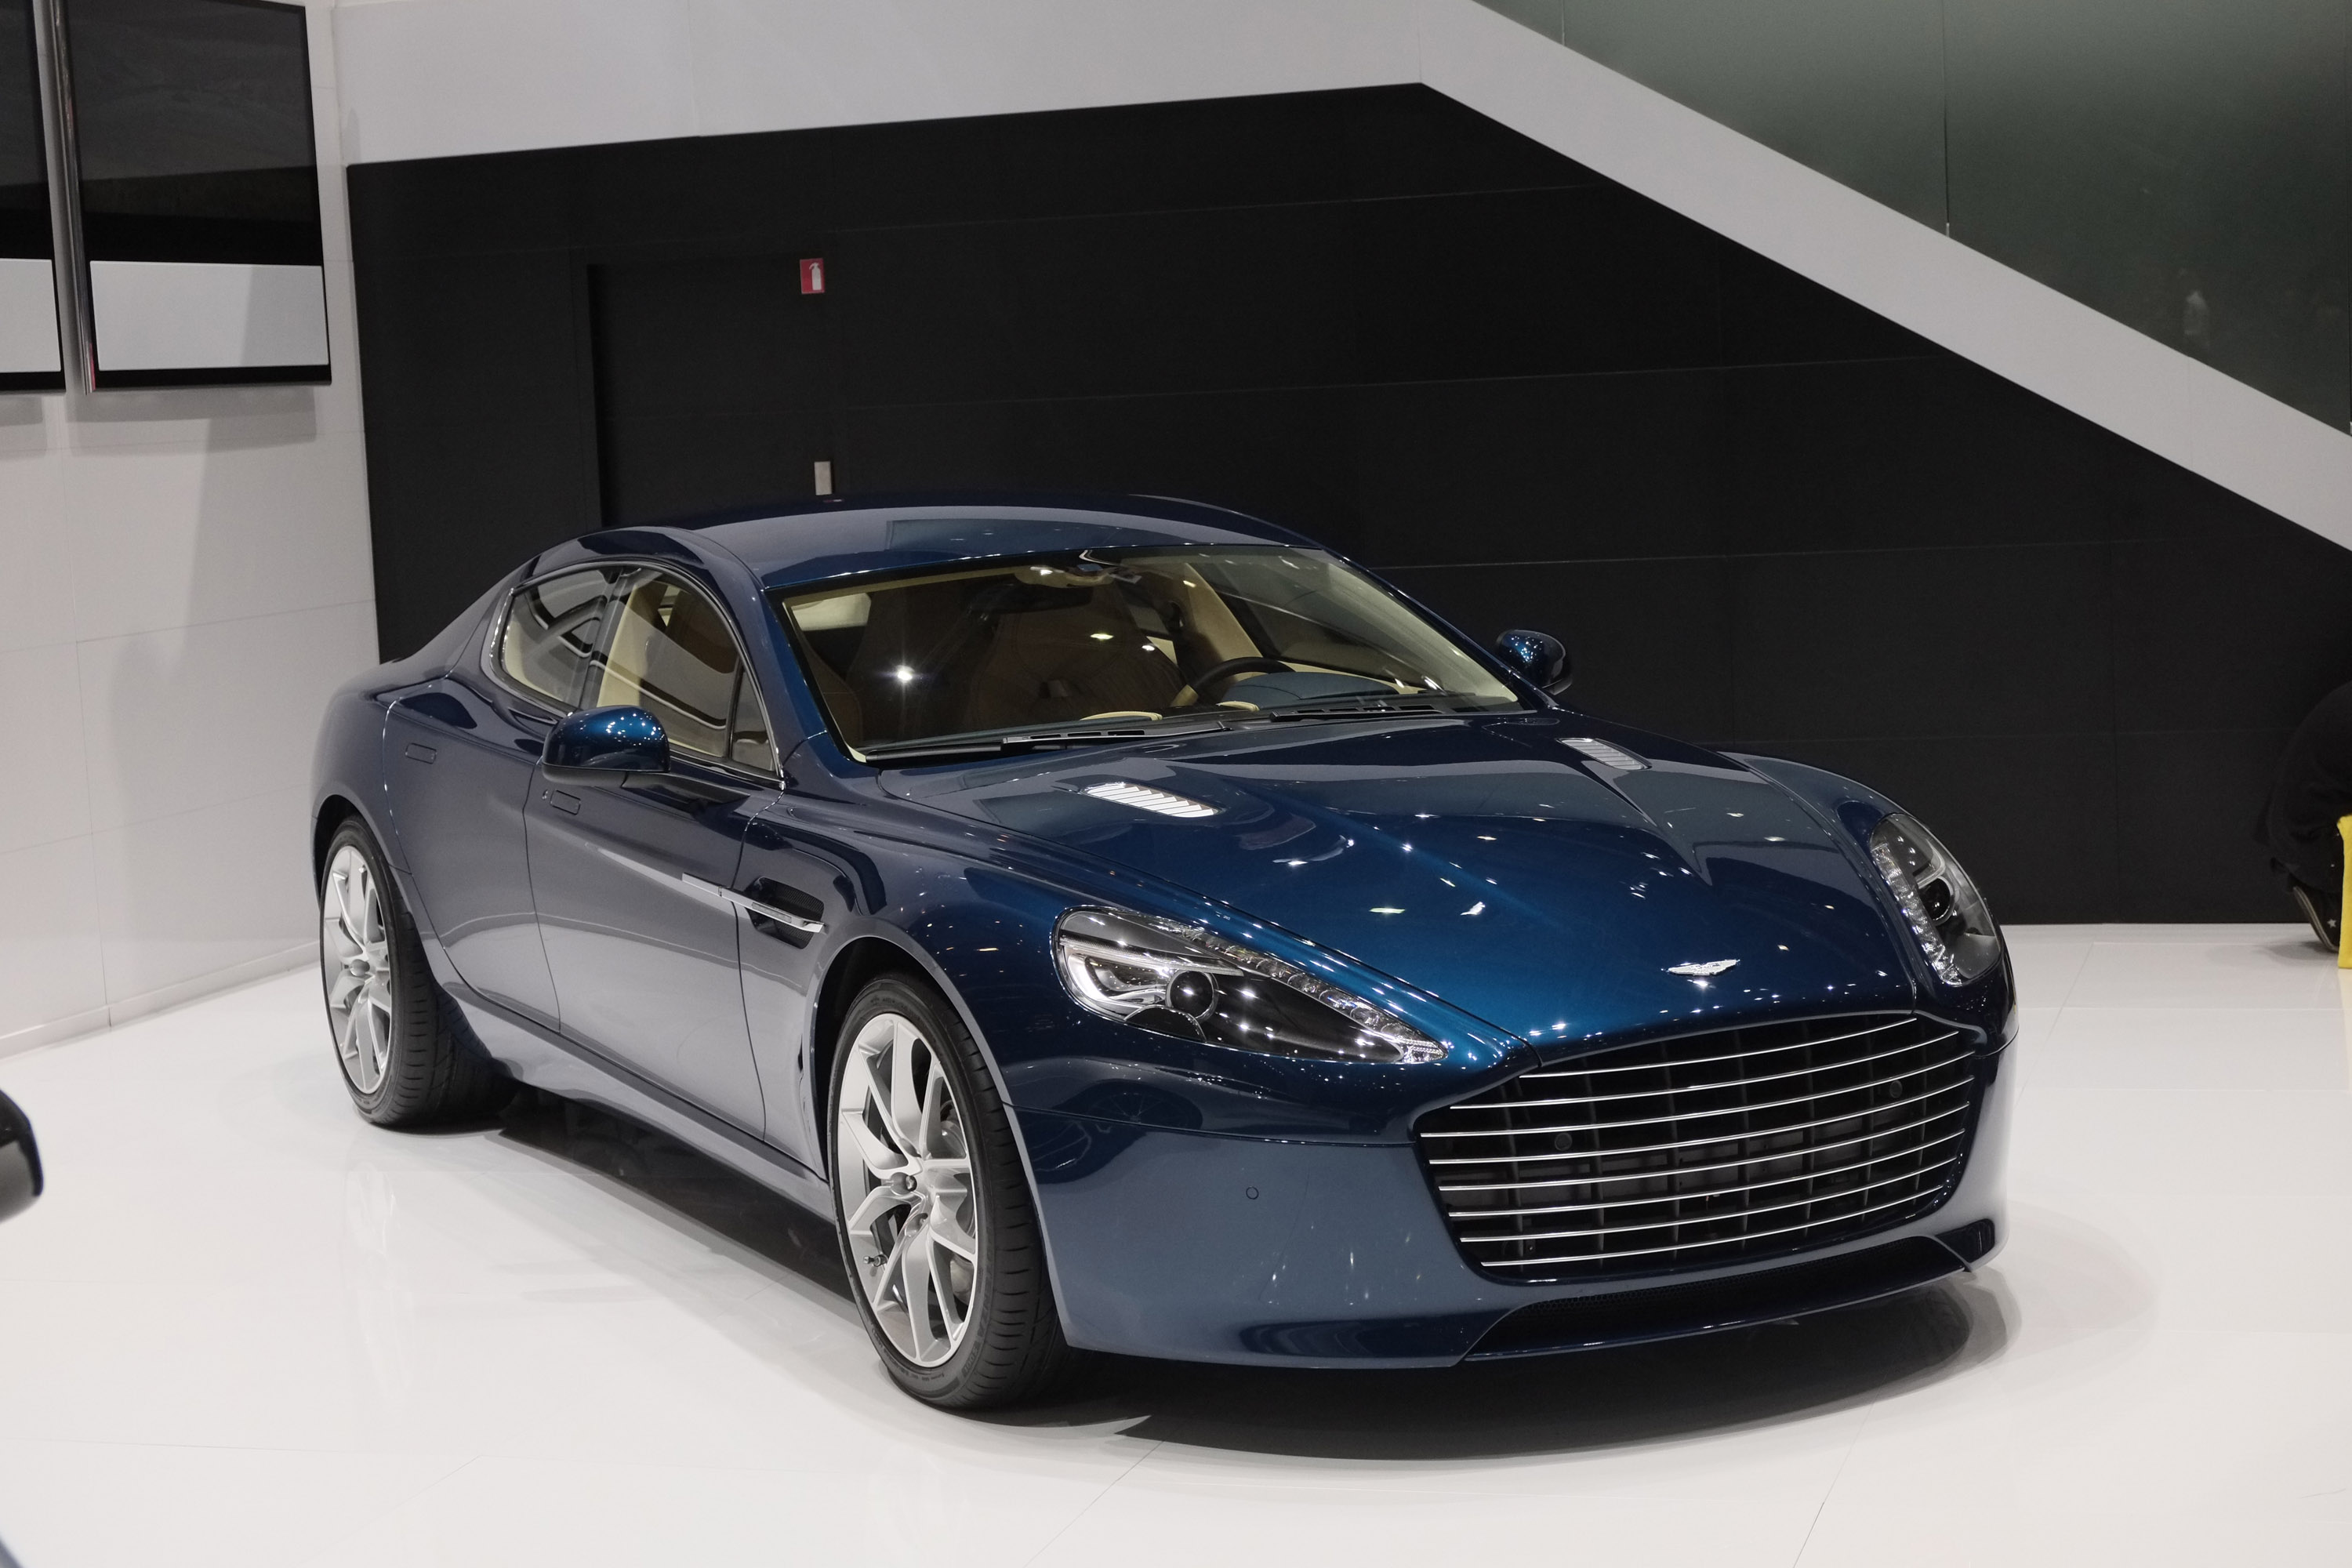 aston martin rapide s geneva 2014 picture 98037. Black Bedroom Furniture Sets. Home Design Ideas